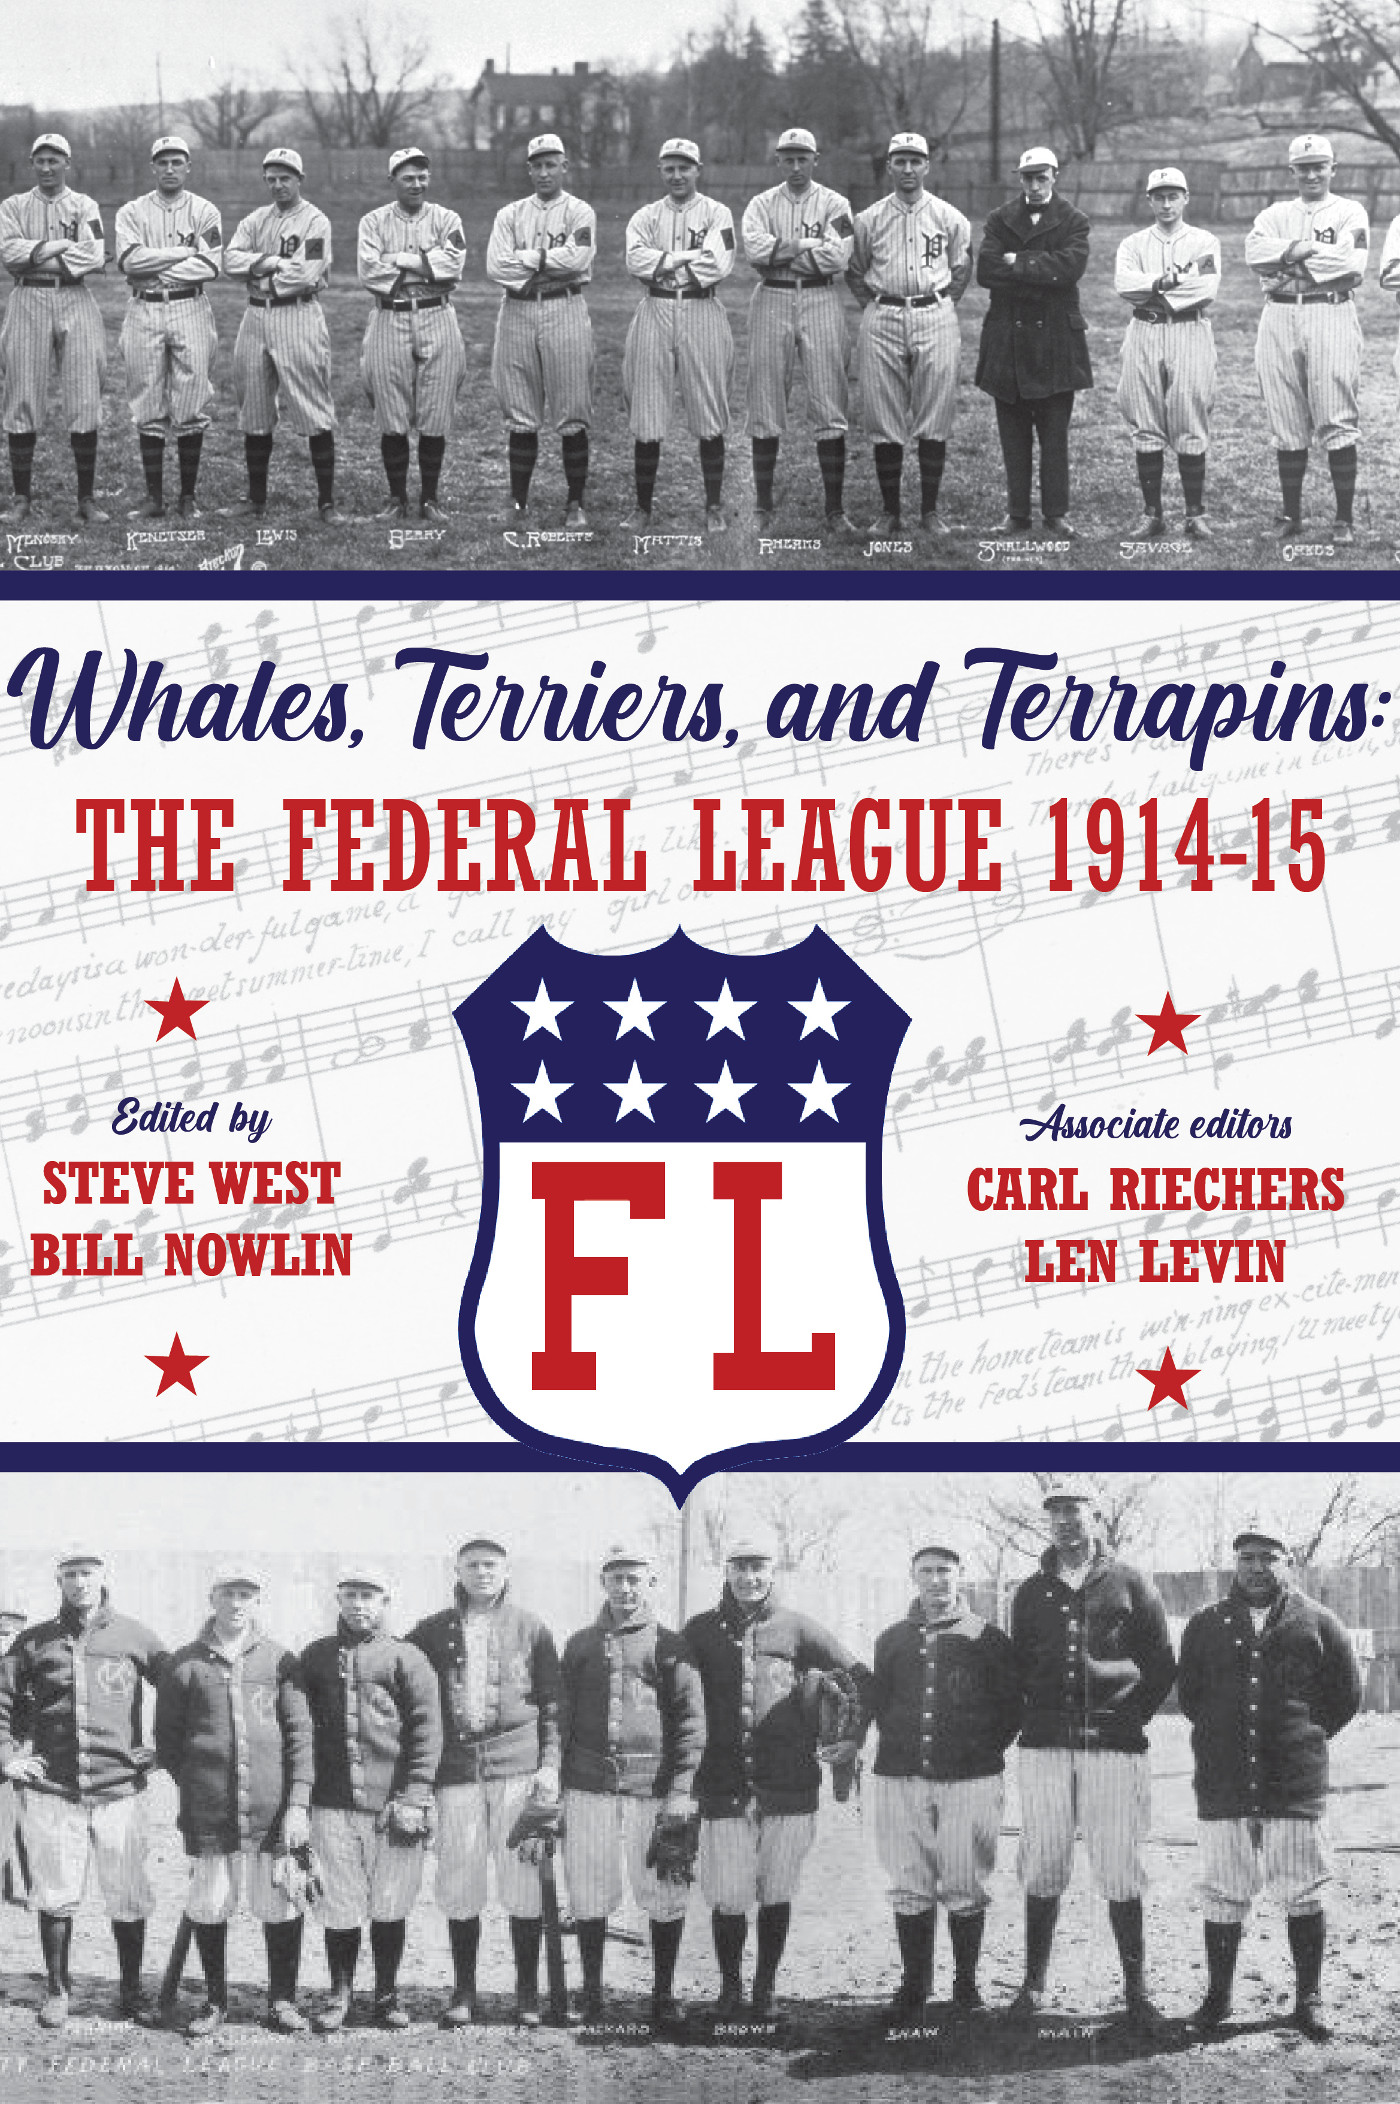 Whales, Terriers, and Terrapins: The Federal League 1914-15